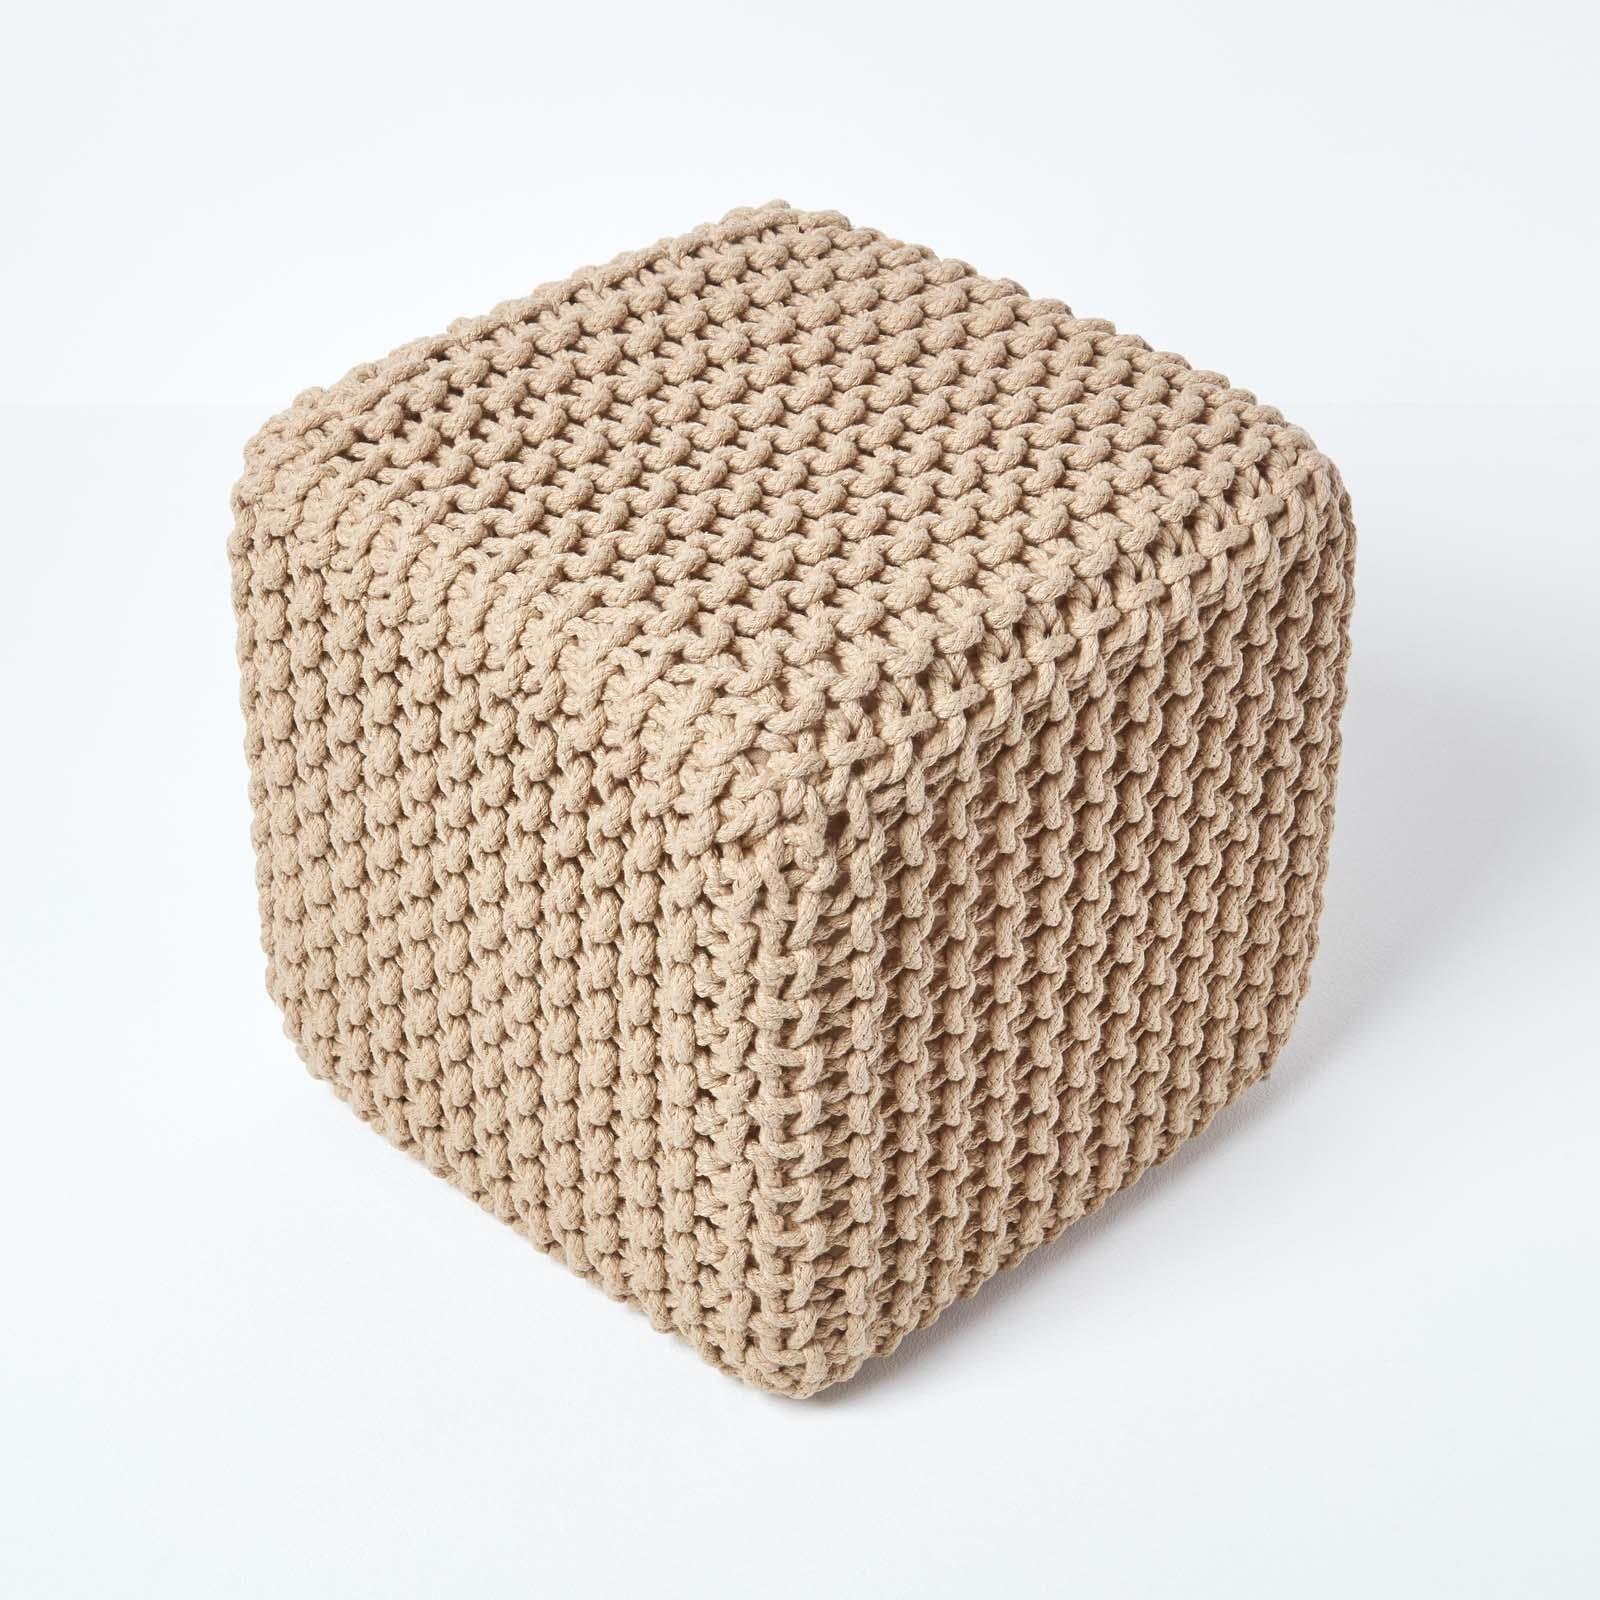 Hand-Knitted-100-Cotton-Pouffes-Round-Sphere-Or-Cube-Square-Chunky-Footstools thumbnail 76